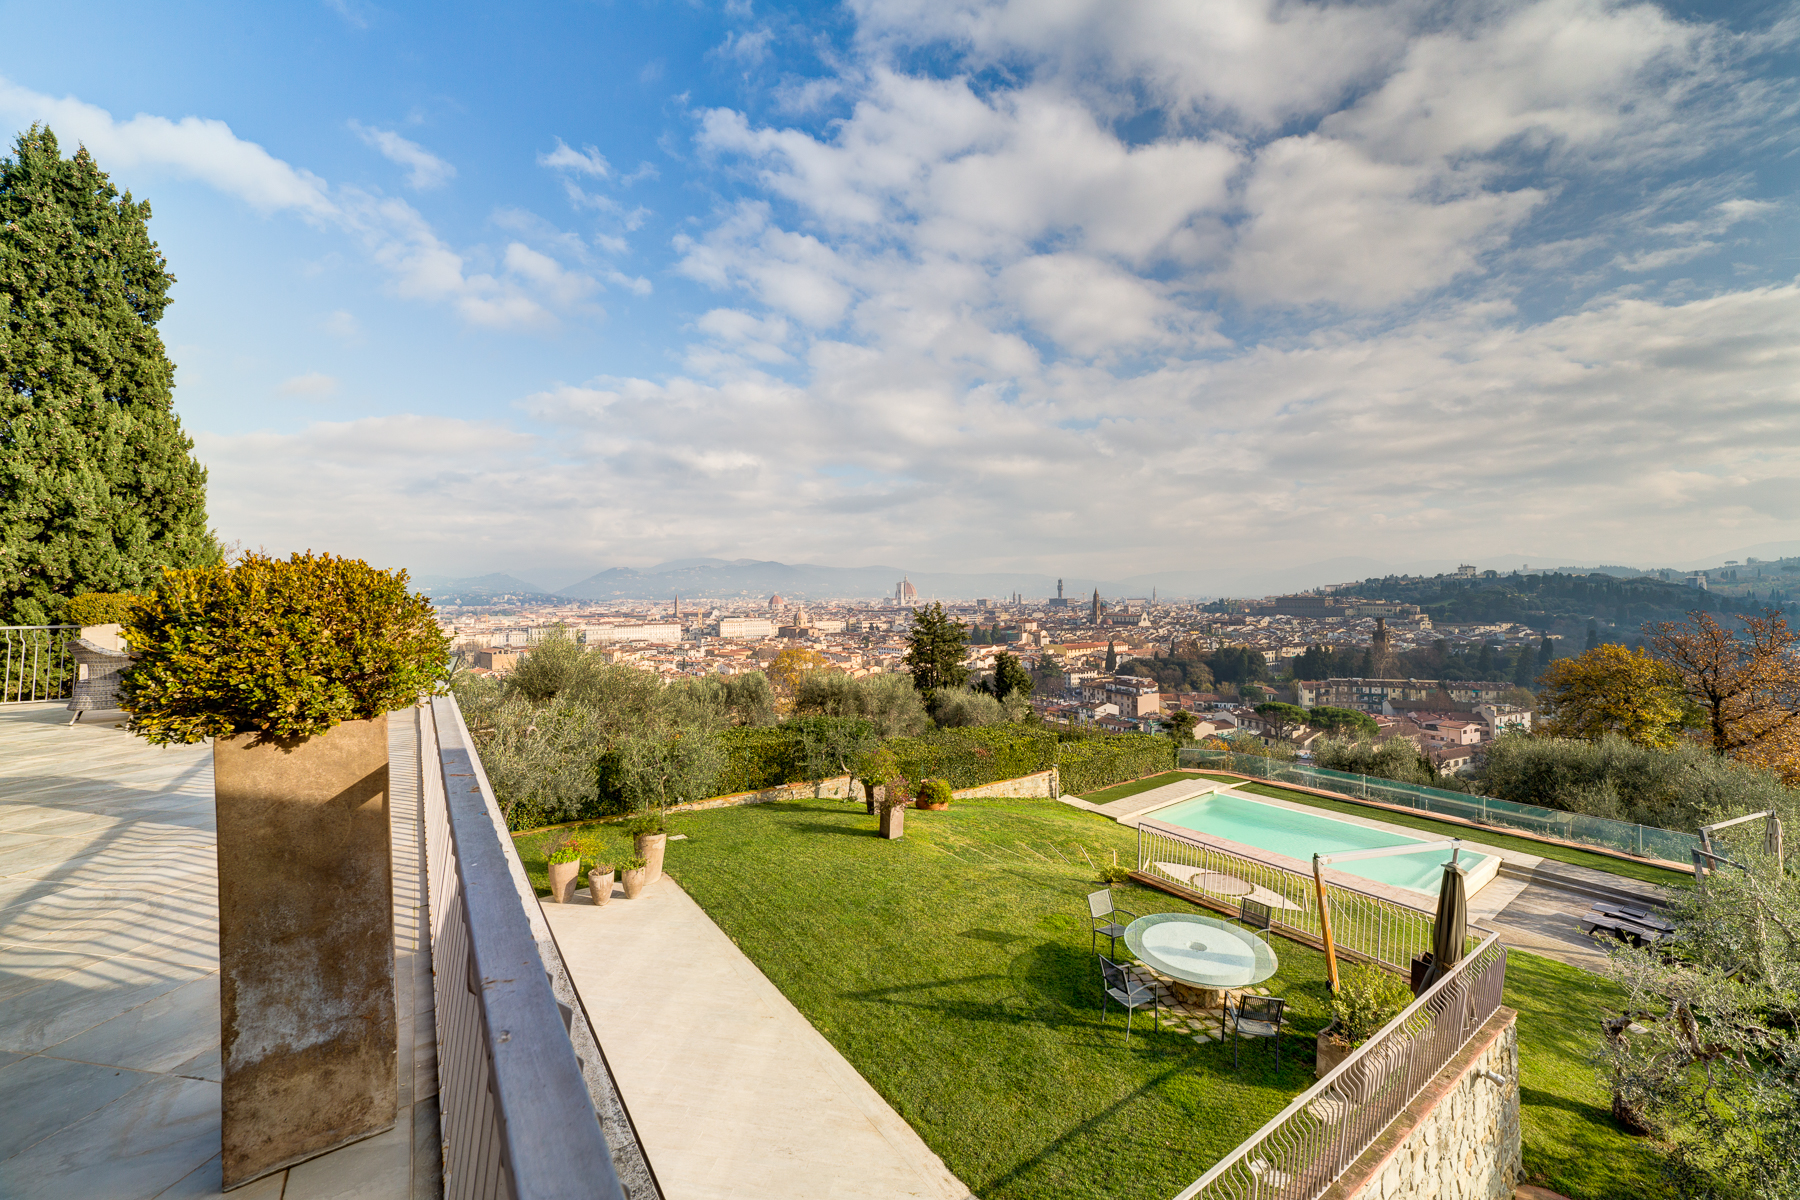 Maison unifamiliale pour l Vente à A truly unique villa with views over Florence Bellosguardo Firenze, Florence 50122 Italie